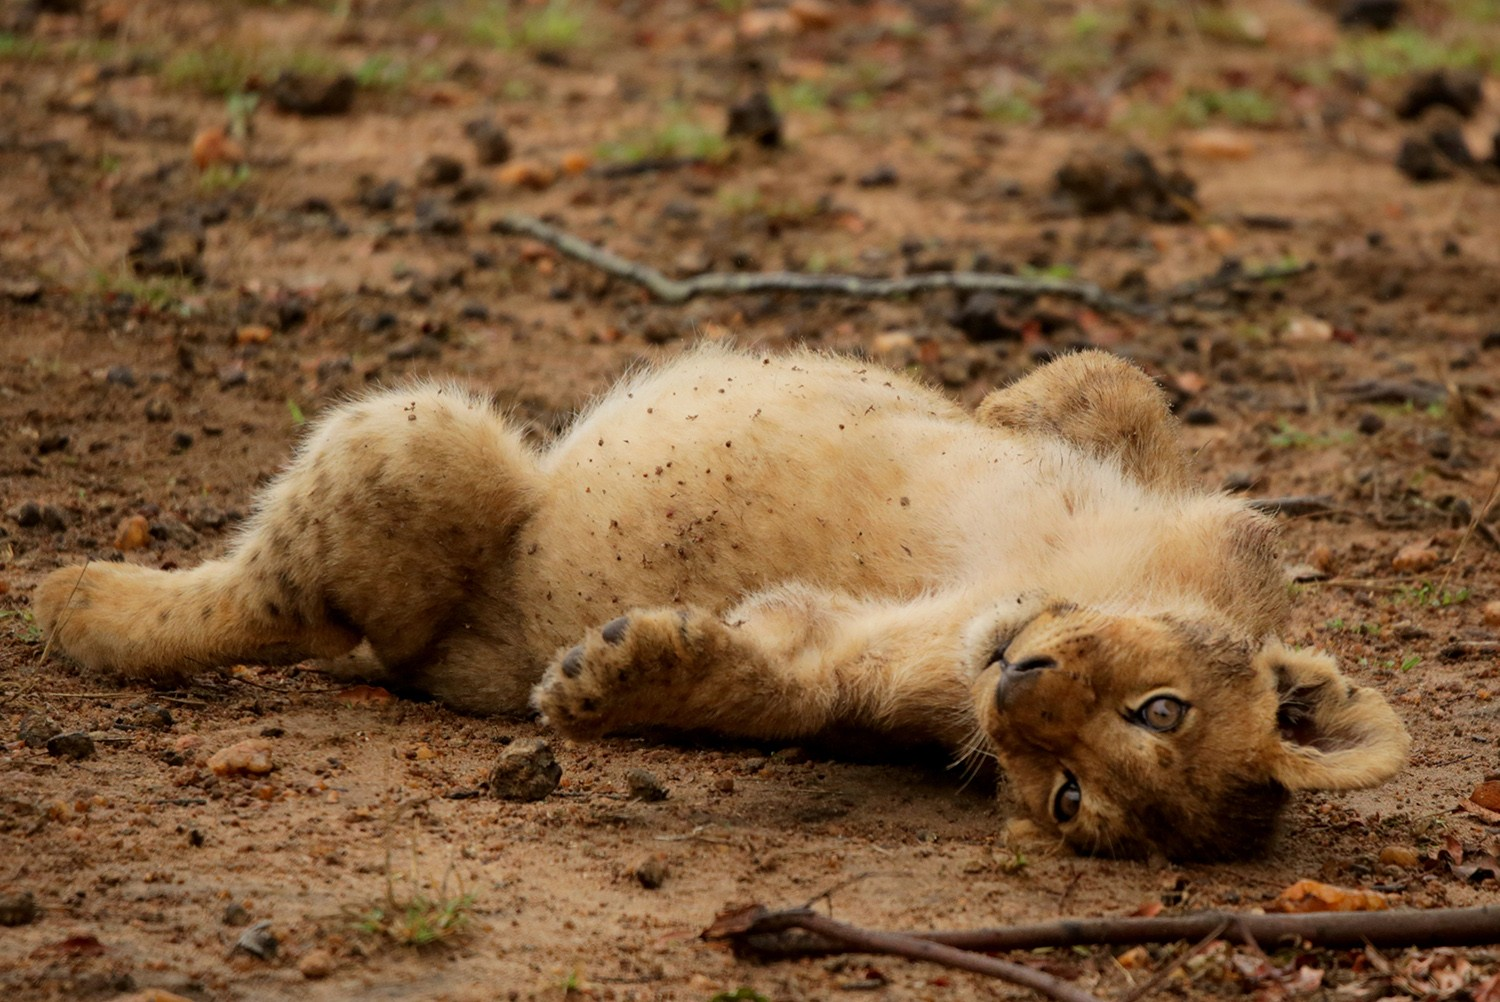 Excessive drinking leads to a round stomach for this lion cub.  Photo by Heléne Ramackers